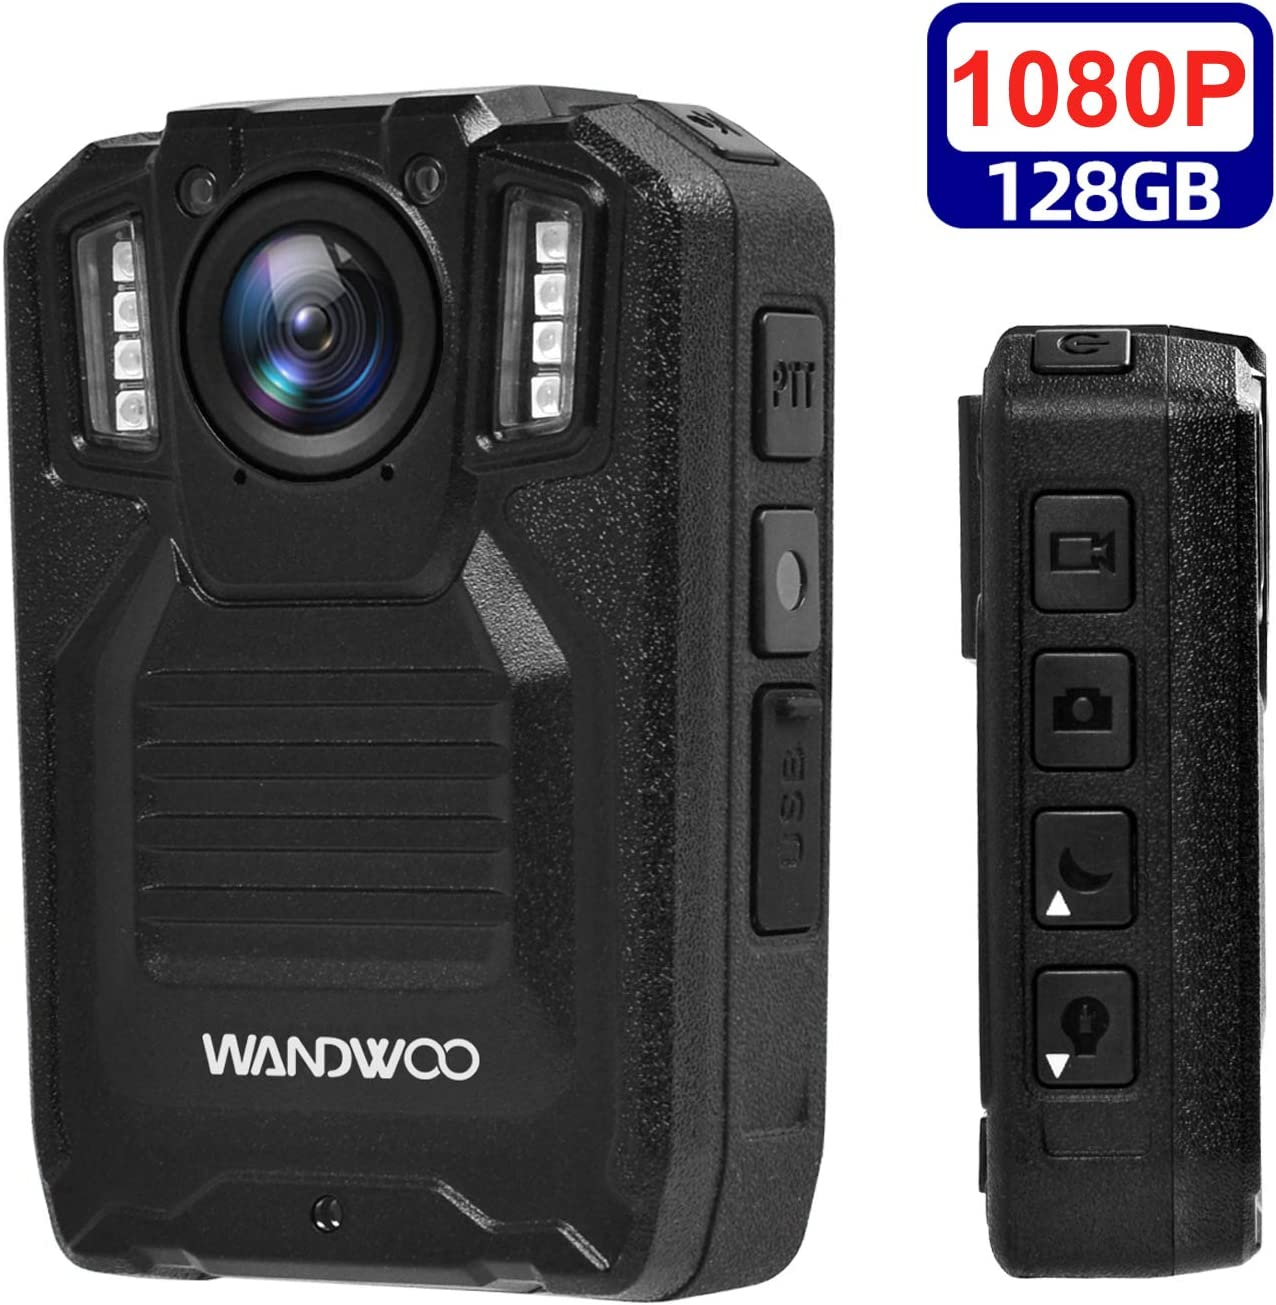 Body Camera for Law Enforcement, WANDWOO Police Camera with128GB Memory for Police Law Enforcement